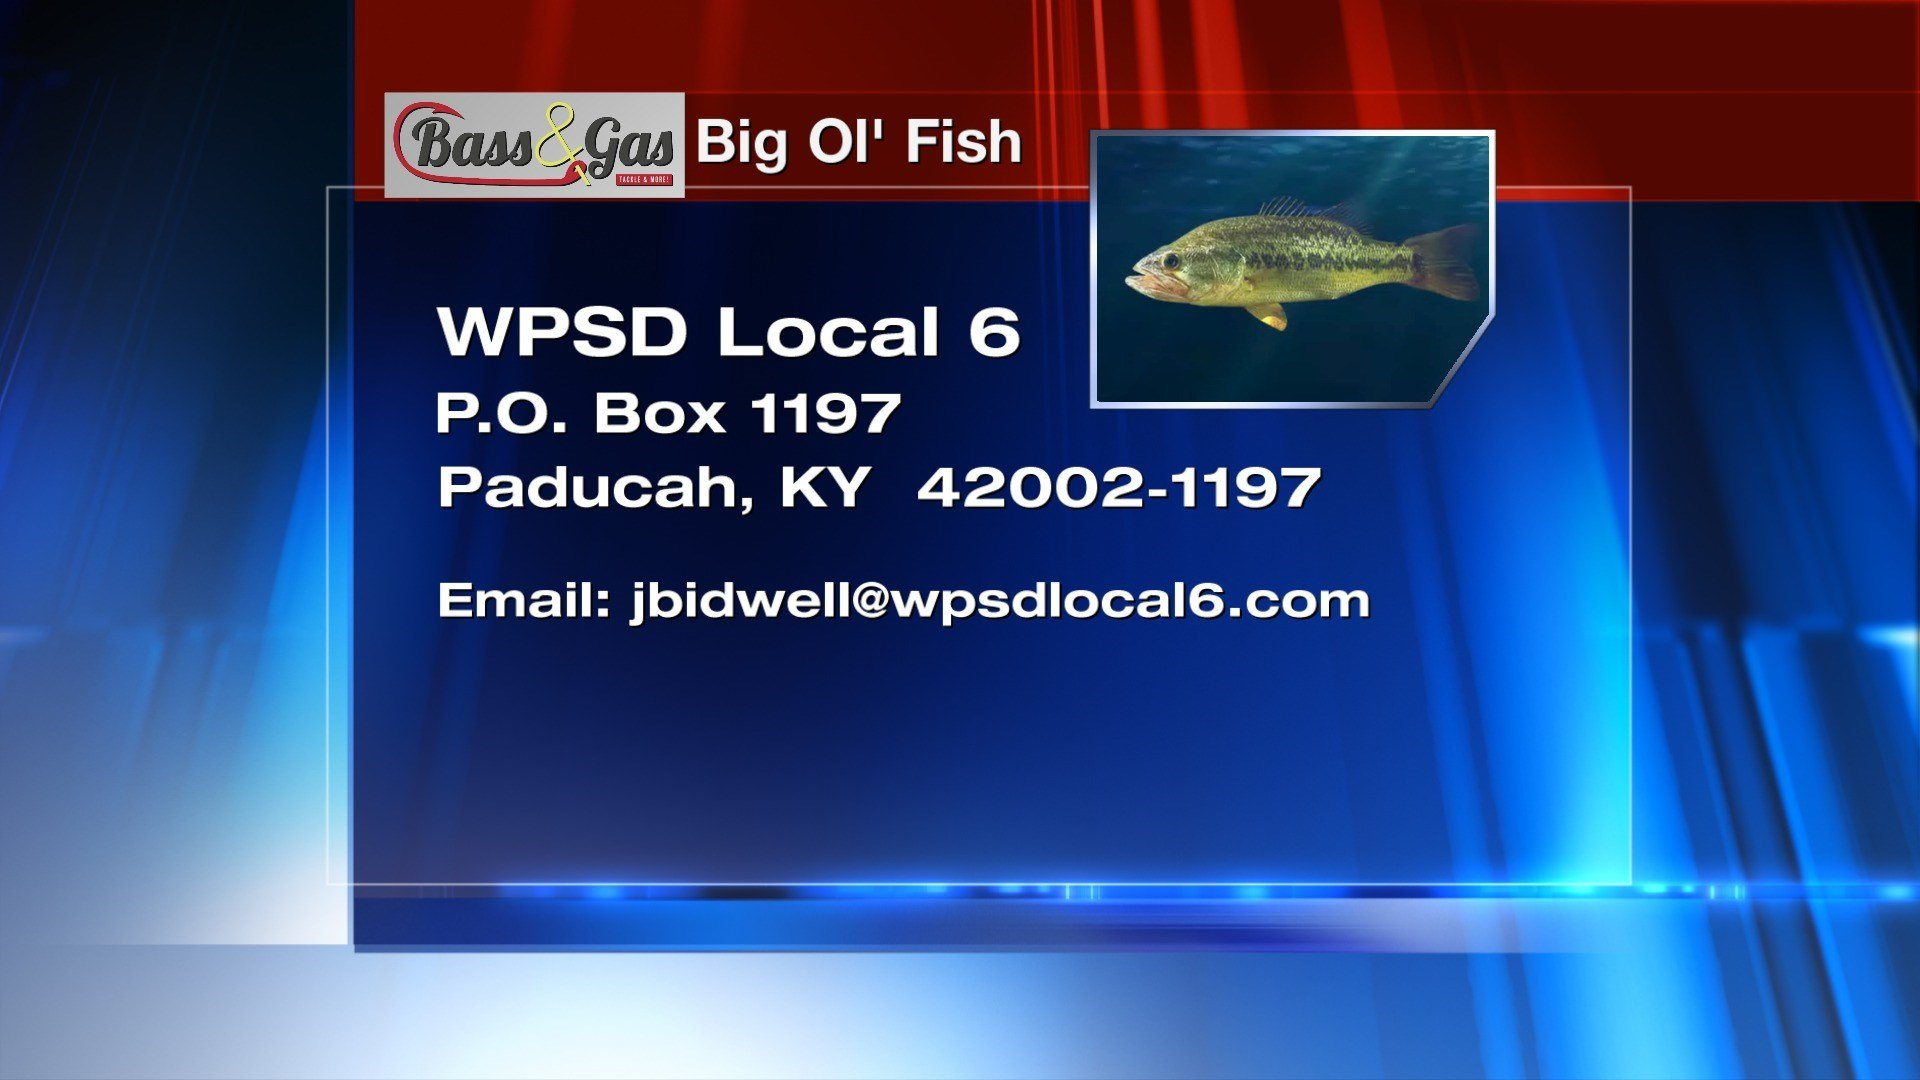 Bass & Gas Big Fish Address.jpg